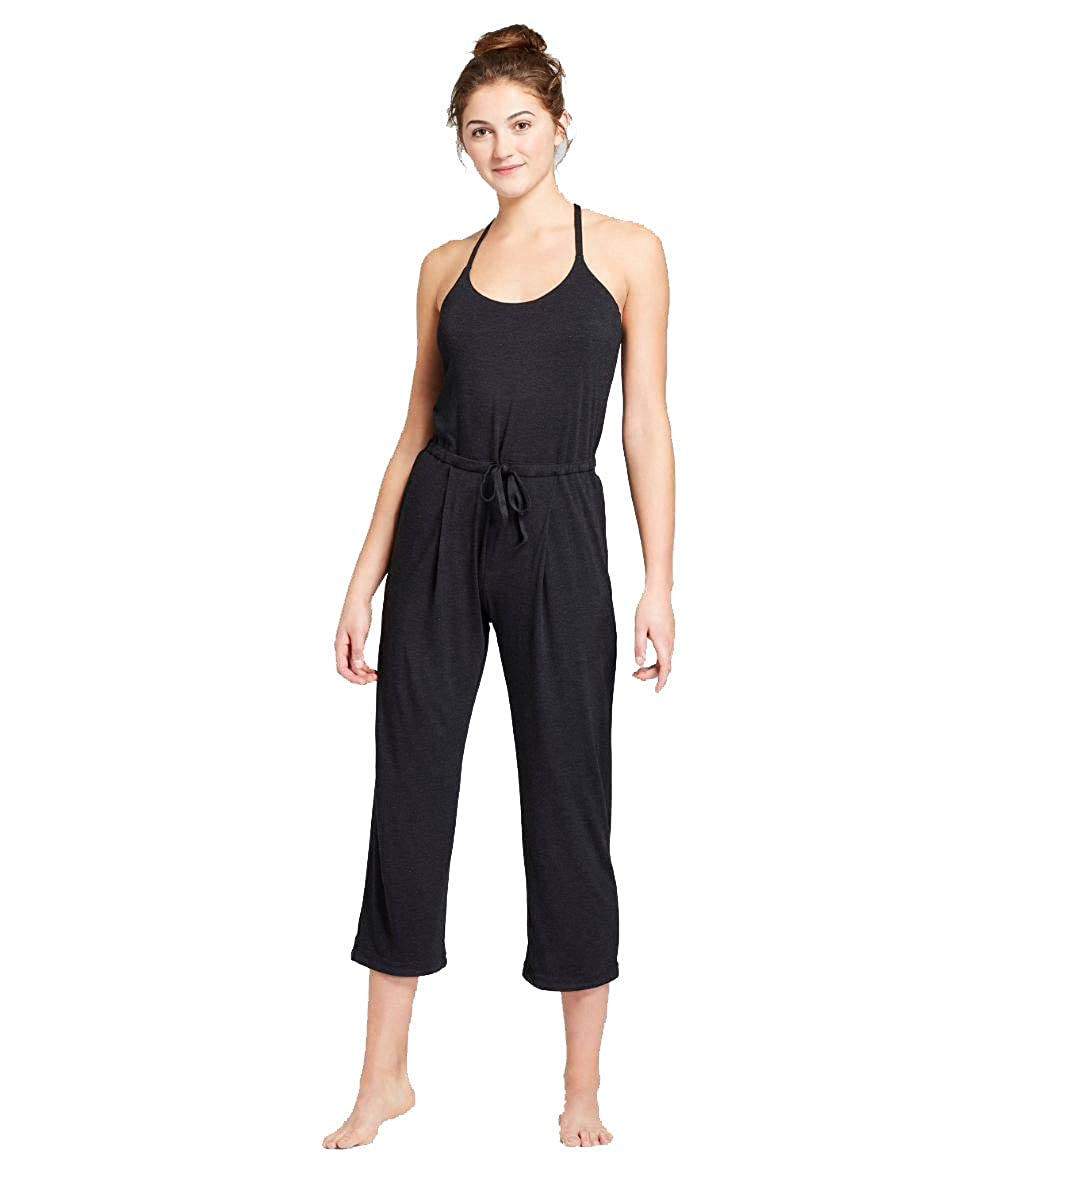 JoyLab Womens Yoga Jumpsuit (Black, M)